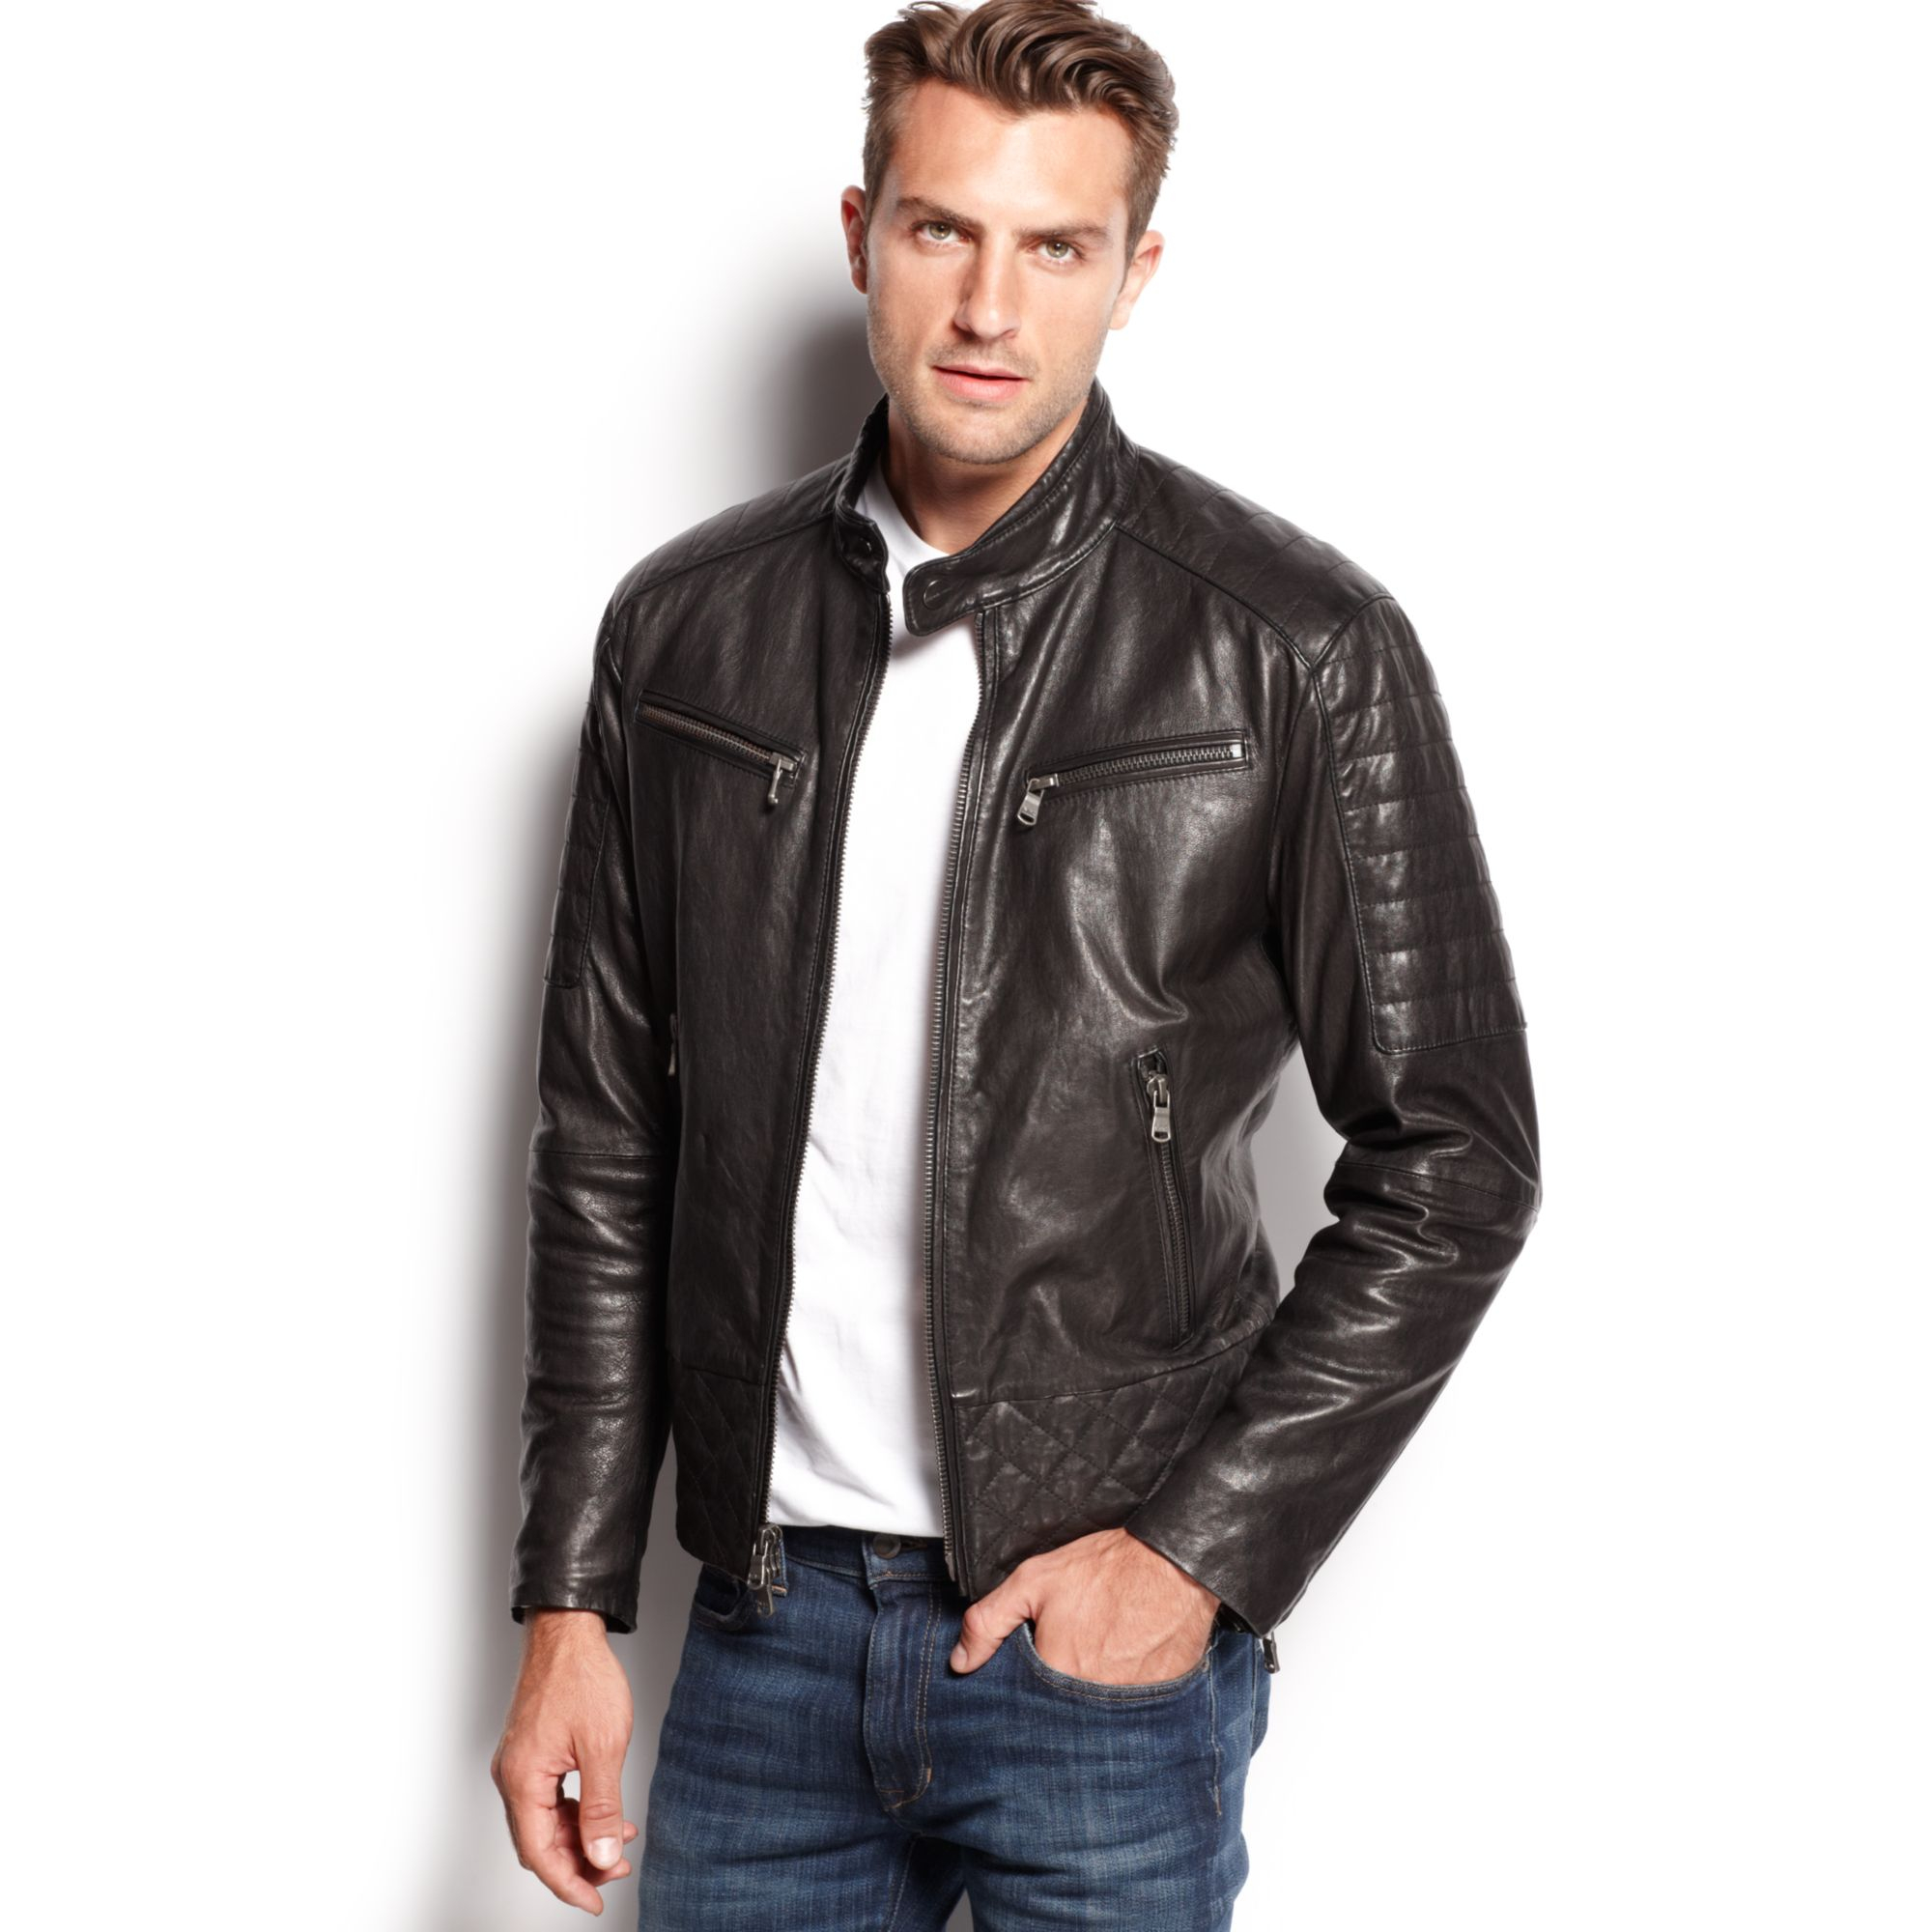 Michael Kors Quilted Washed Leather Jacket In Black For Men | Lyst